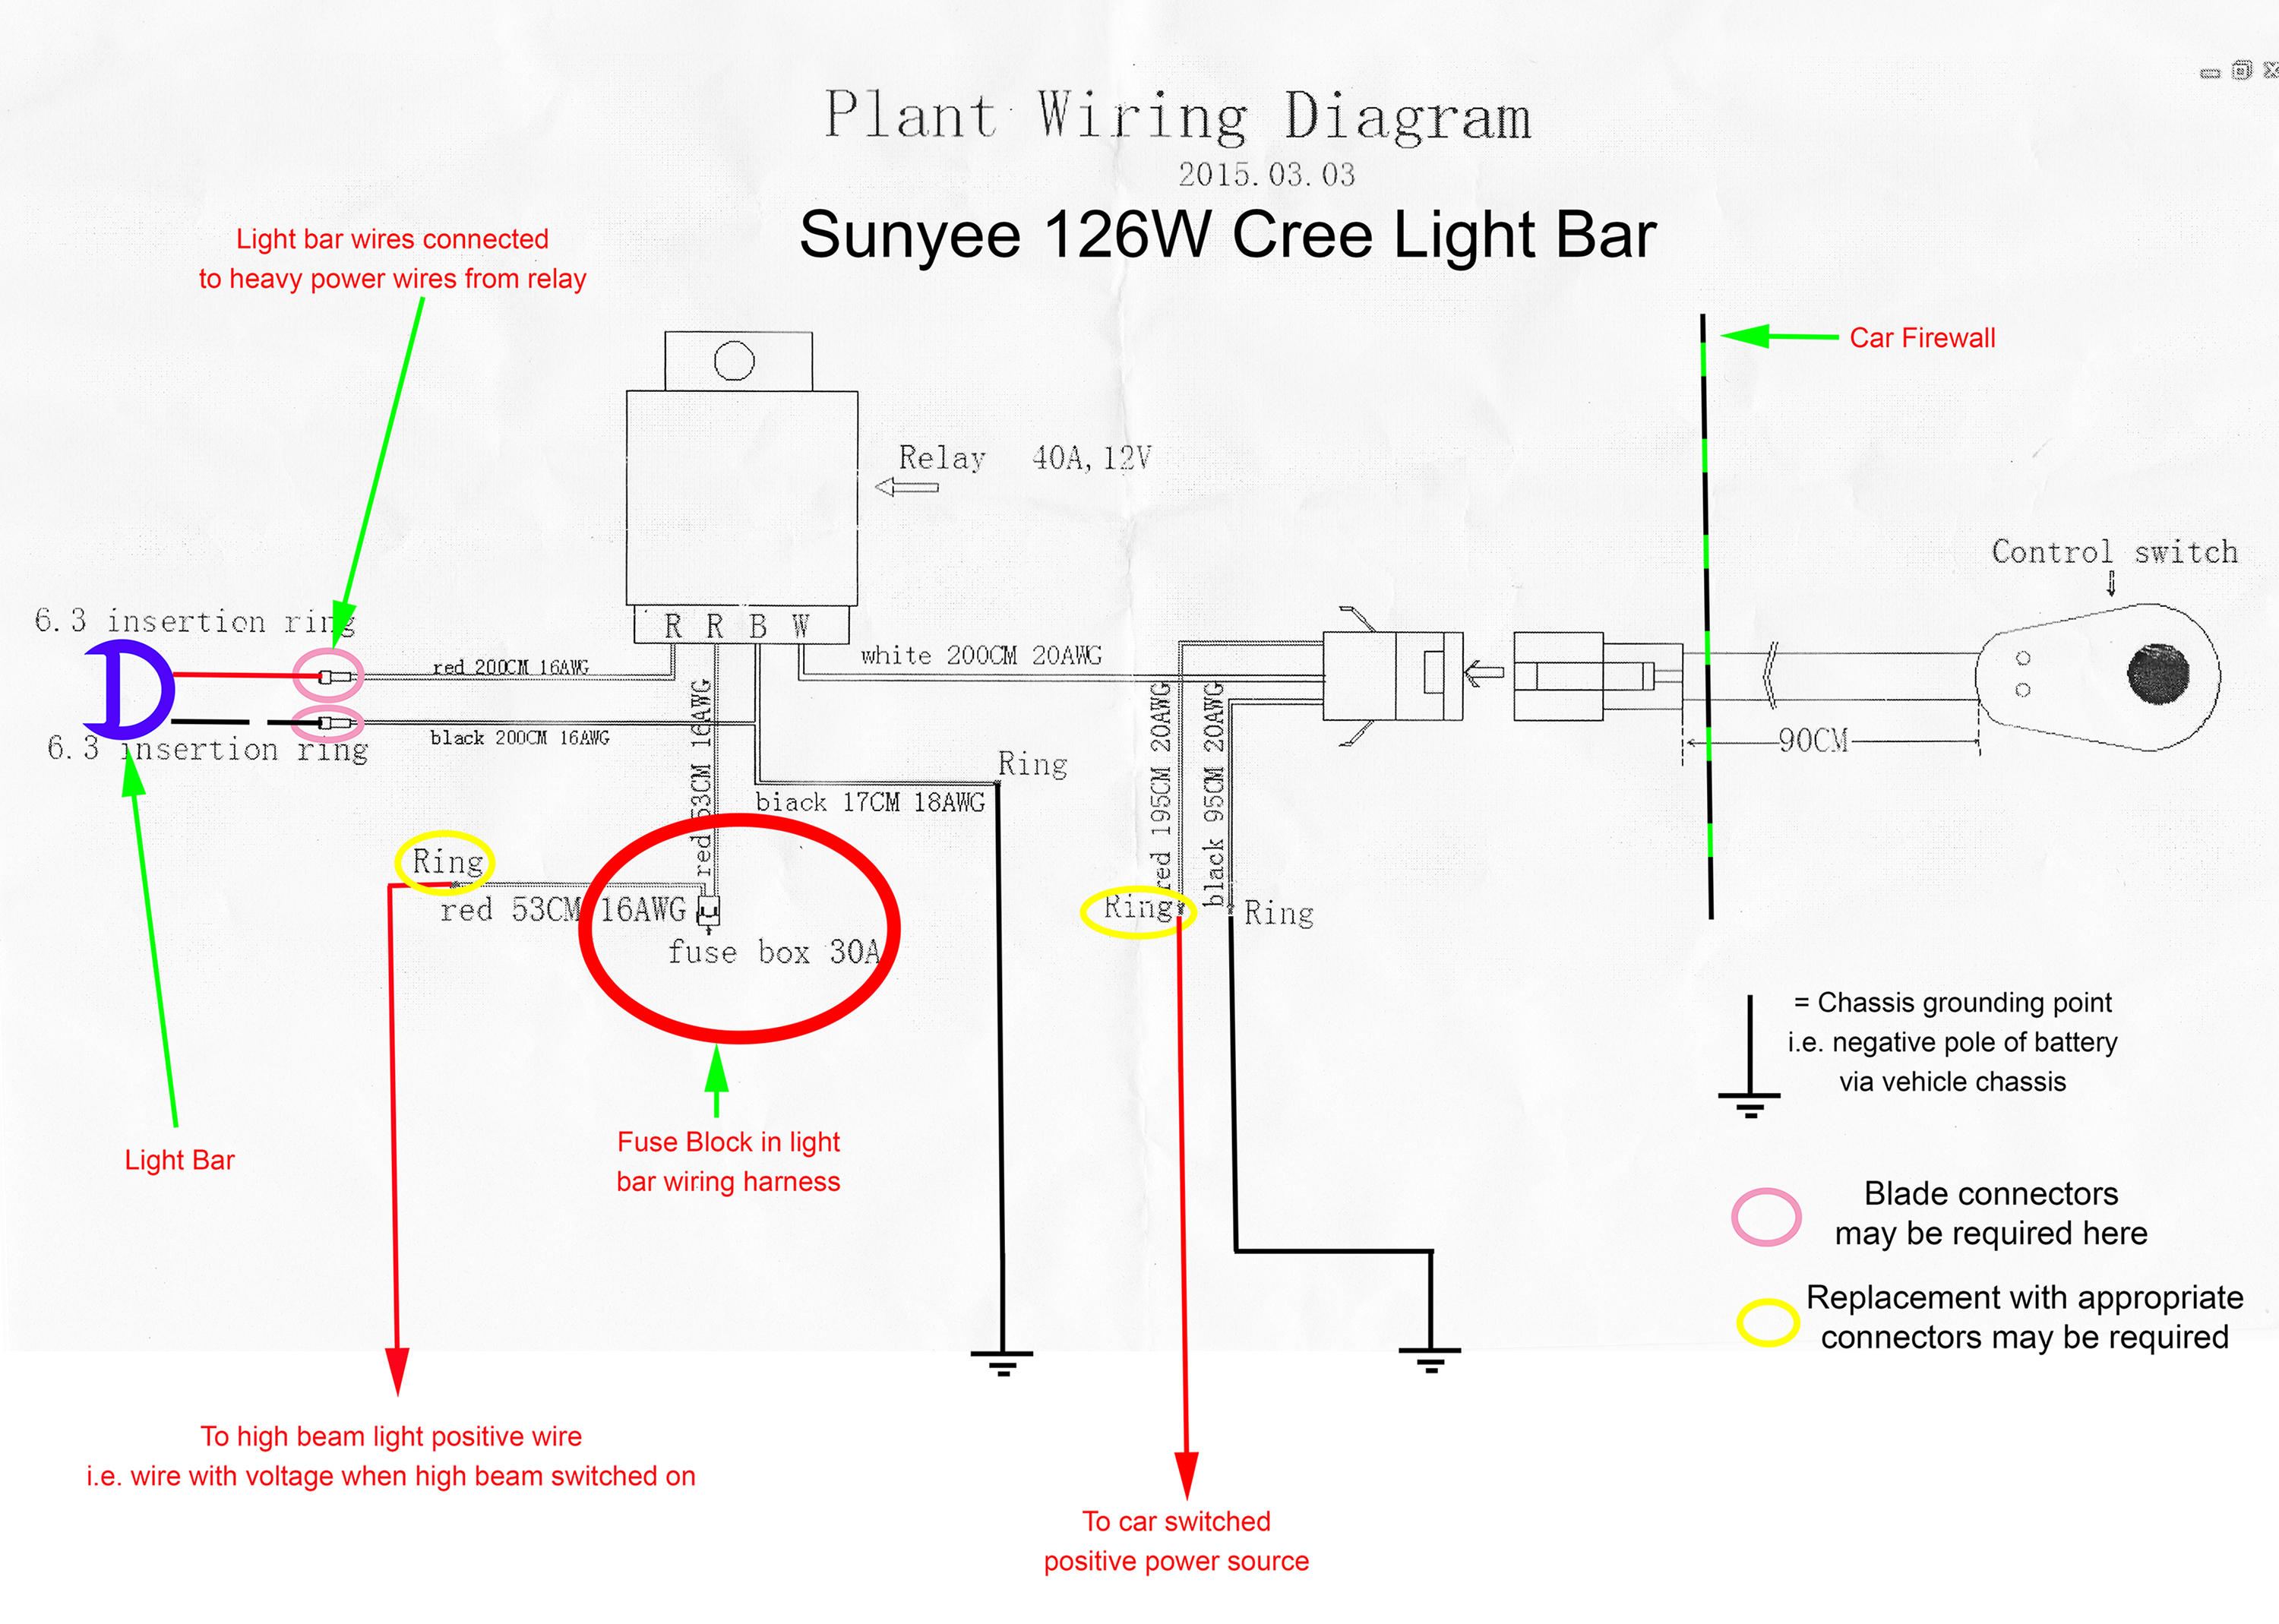 Subaru Outback Driving Light Wiring Diagram Great Installation Of 2000 Harness Install Sunyee Cree 126w Bar Sg Ii Forester Page 3 Rh Offroadsubarus Com 2007